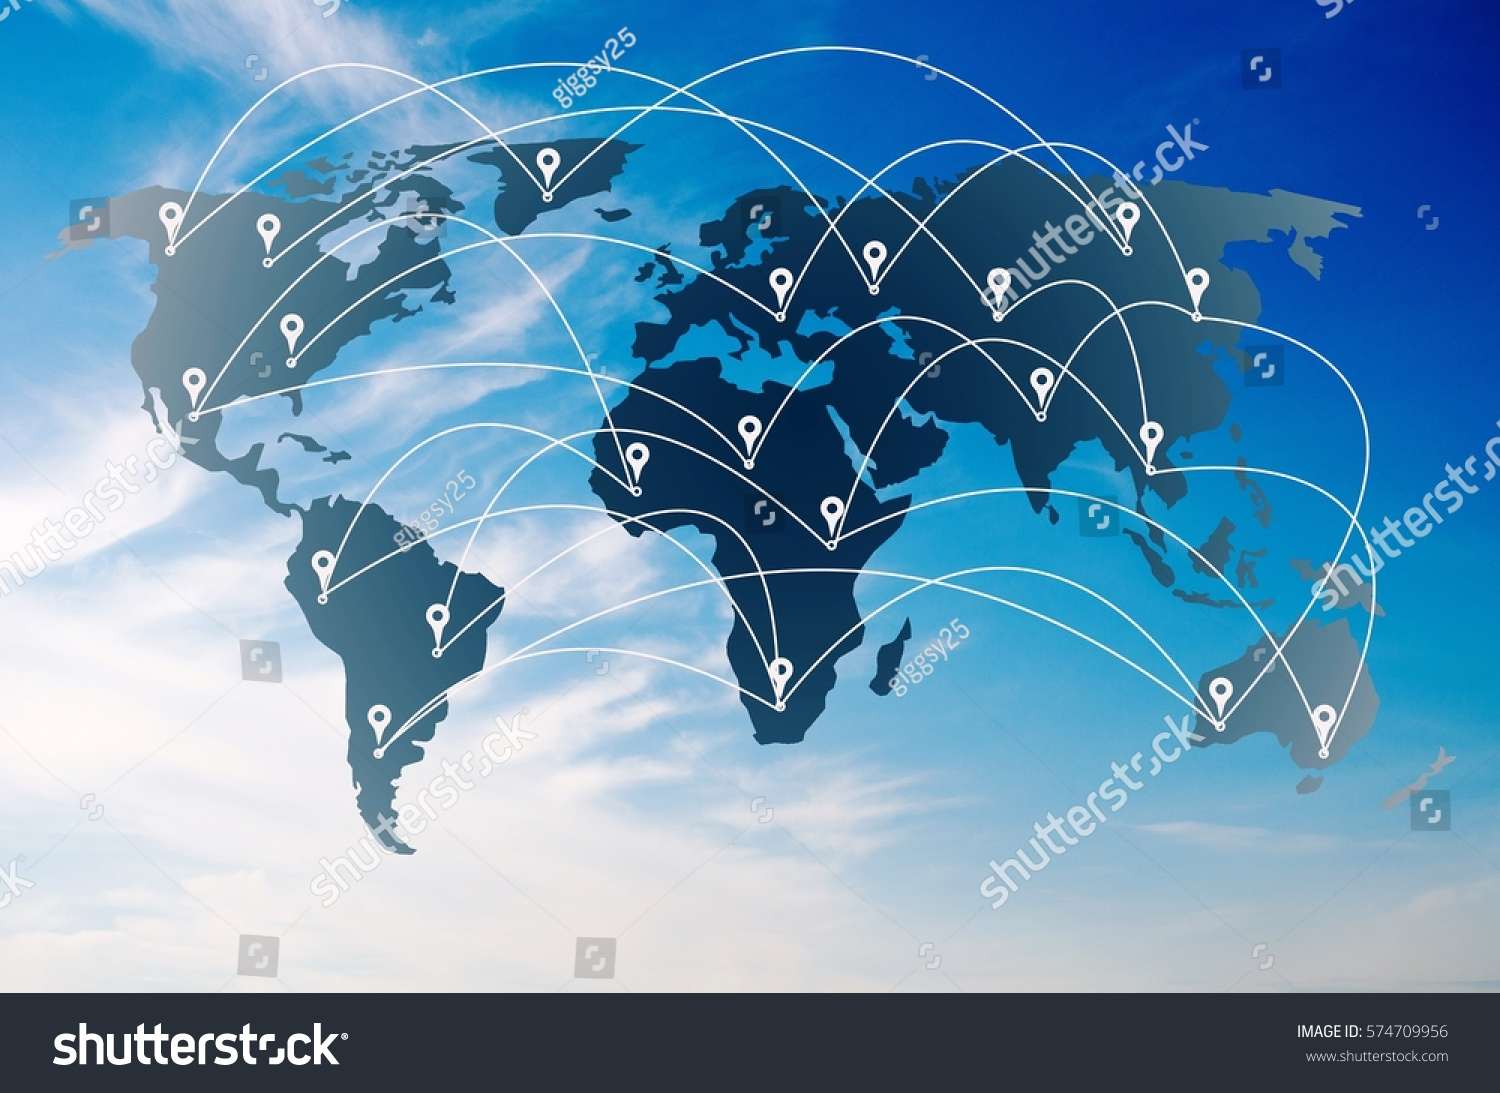 World map pins connection concept on stock illustration 574709956 world map pins connection concept on blue sky background color tone effect gumiabroncs Choice Image